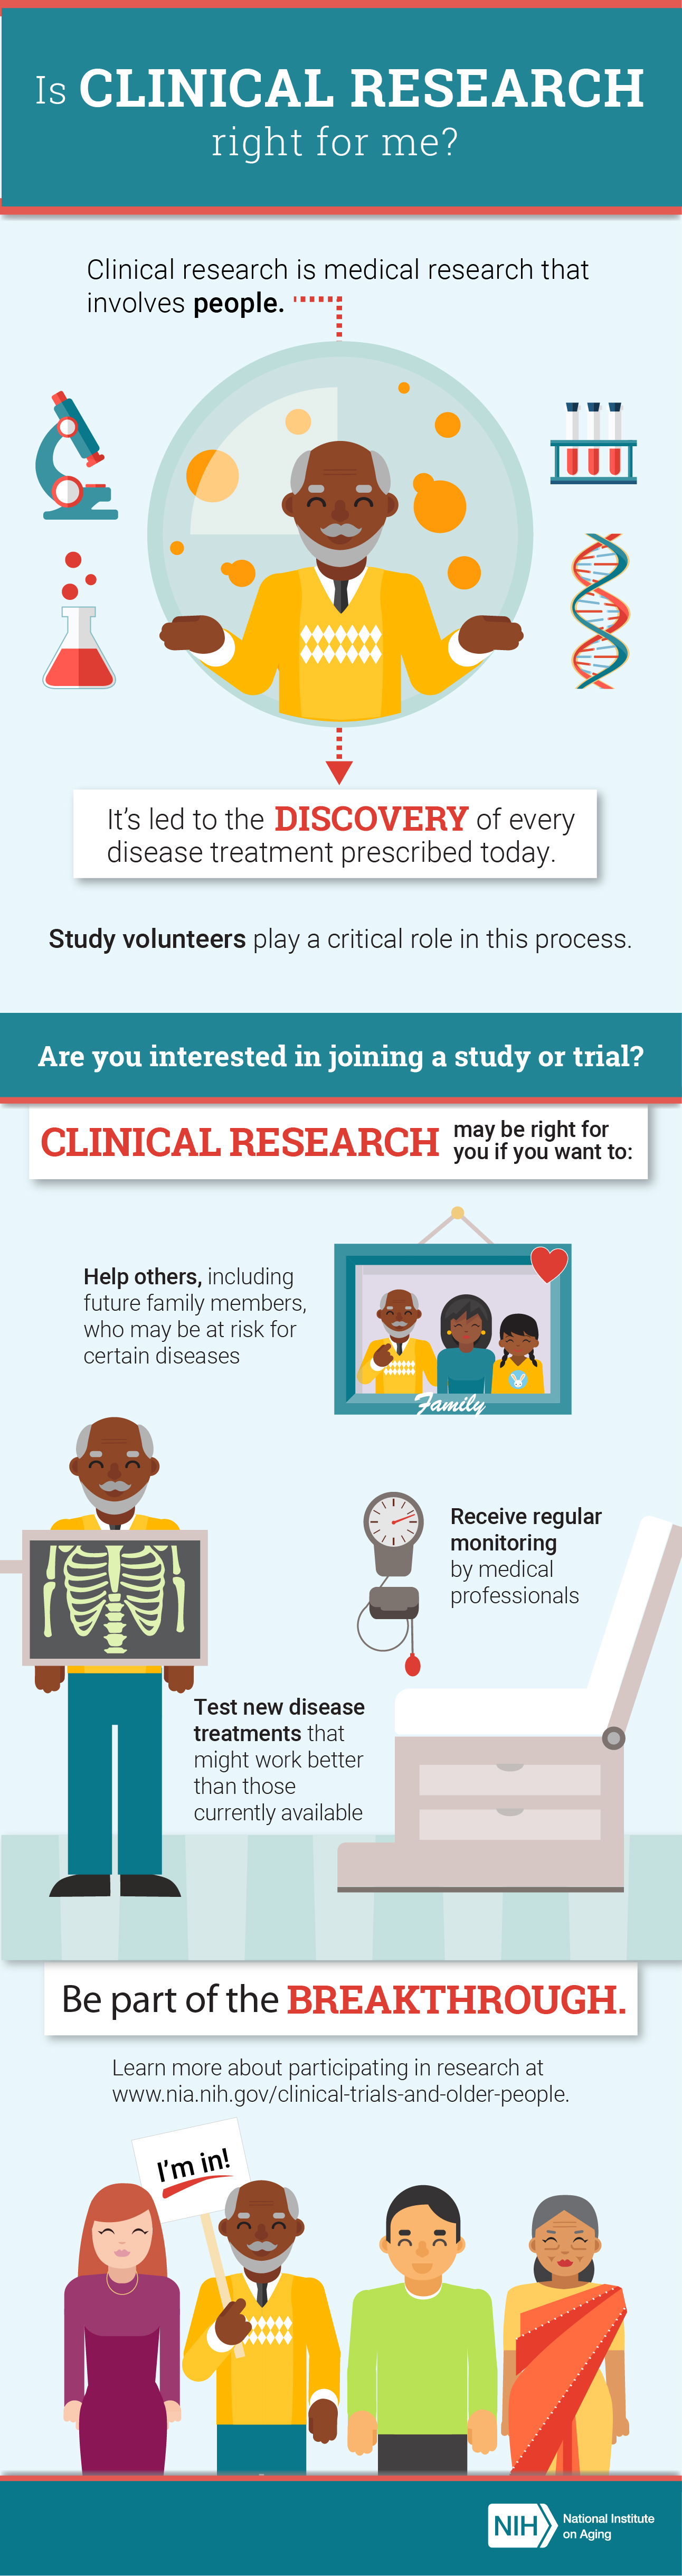 Is clinical research right for me? Clinical research is medical research that involves people. It's led to the discovery of every disease treatment prescribed today. Study volunteers play a critical role in this process. Are you interested in joining a study or clinical trial? Clinical research may be right for you if you want to: Help others, including future family members, who may be at risk for certain diseases; Receive regular monitoring by health professionals; Test new disease treatments.